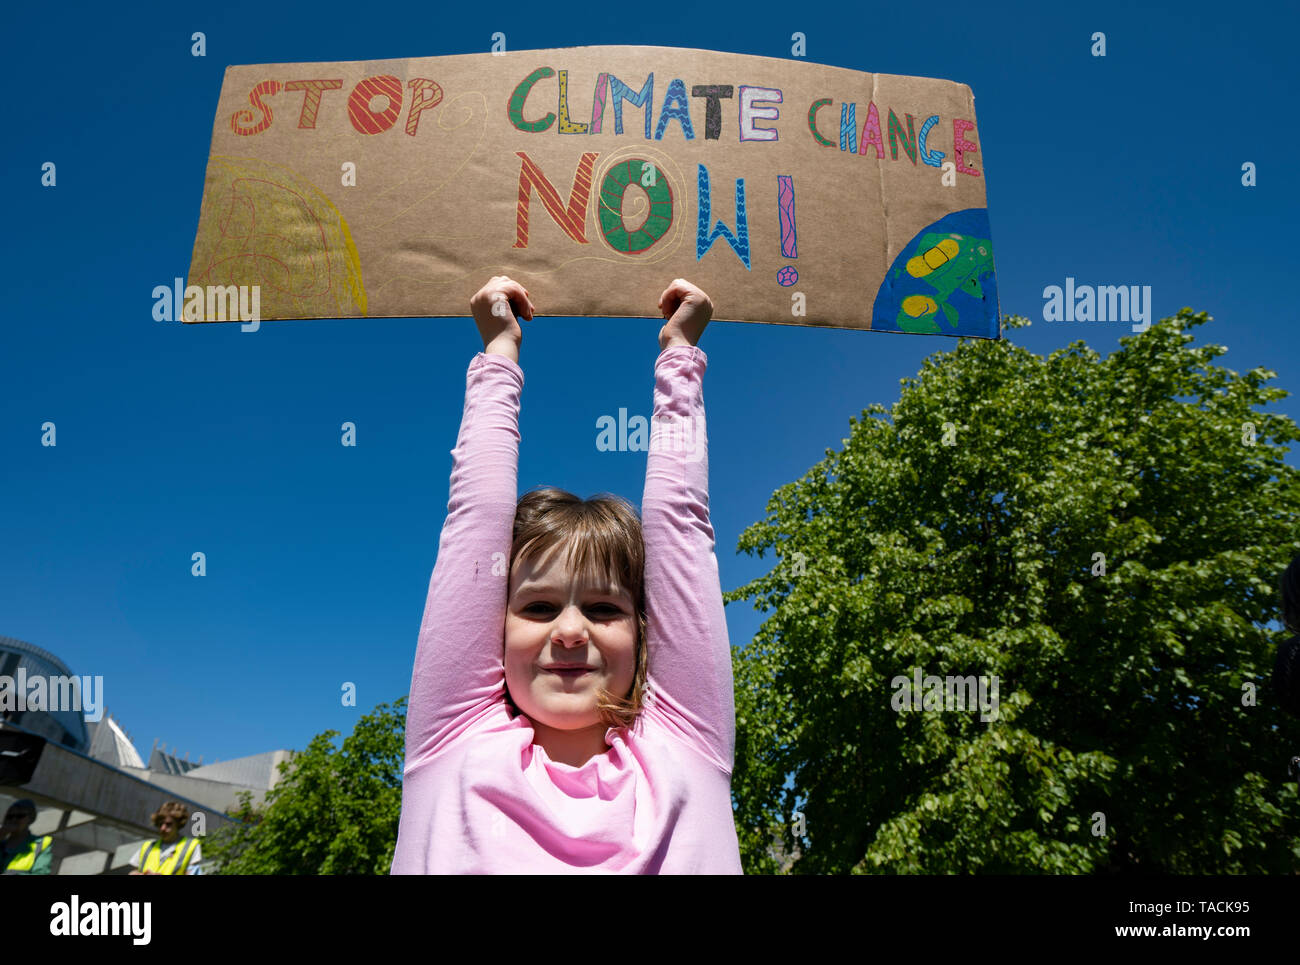 Edinburgh, Scotland, UK. 24th May, 2019. Scottish Youth Climate Strike by schoolchildren in central Edinburgh. Students took a day off school to meet in The Meadows park before marching along the Royal Mile to a protest held outside the Scottish Parliament at Holyrood. The protest is to coincide with the second global school strike for climate - along with over 1500 locations around the world. The strikes were started in August 2018 by the Swedish schoolgirl Greta Thunberg and have since been mirrored across the world.  pictured; young girl holds sign Credit: Iain Masterton/Alamy Live News - Stock Image